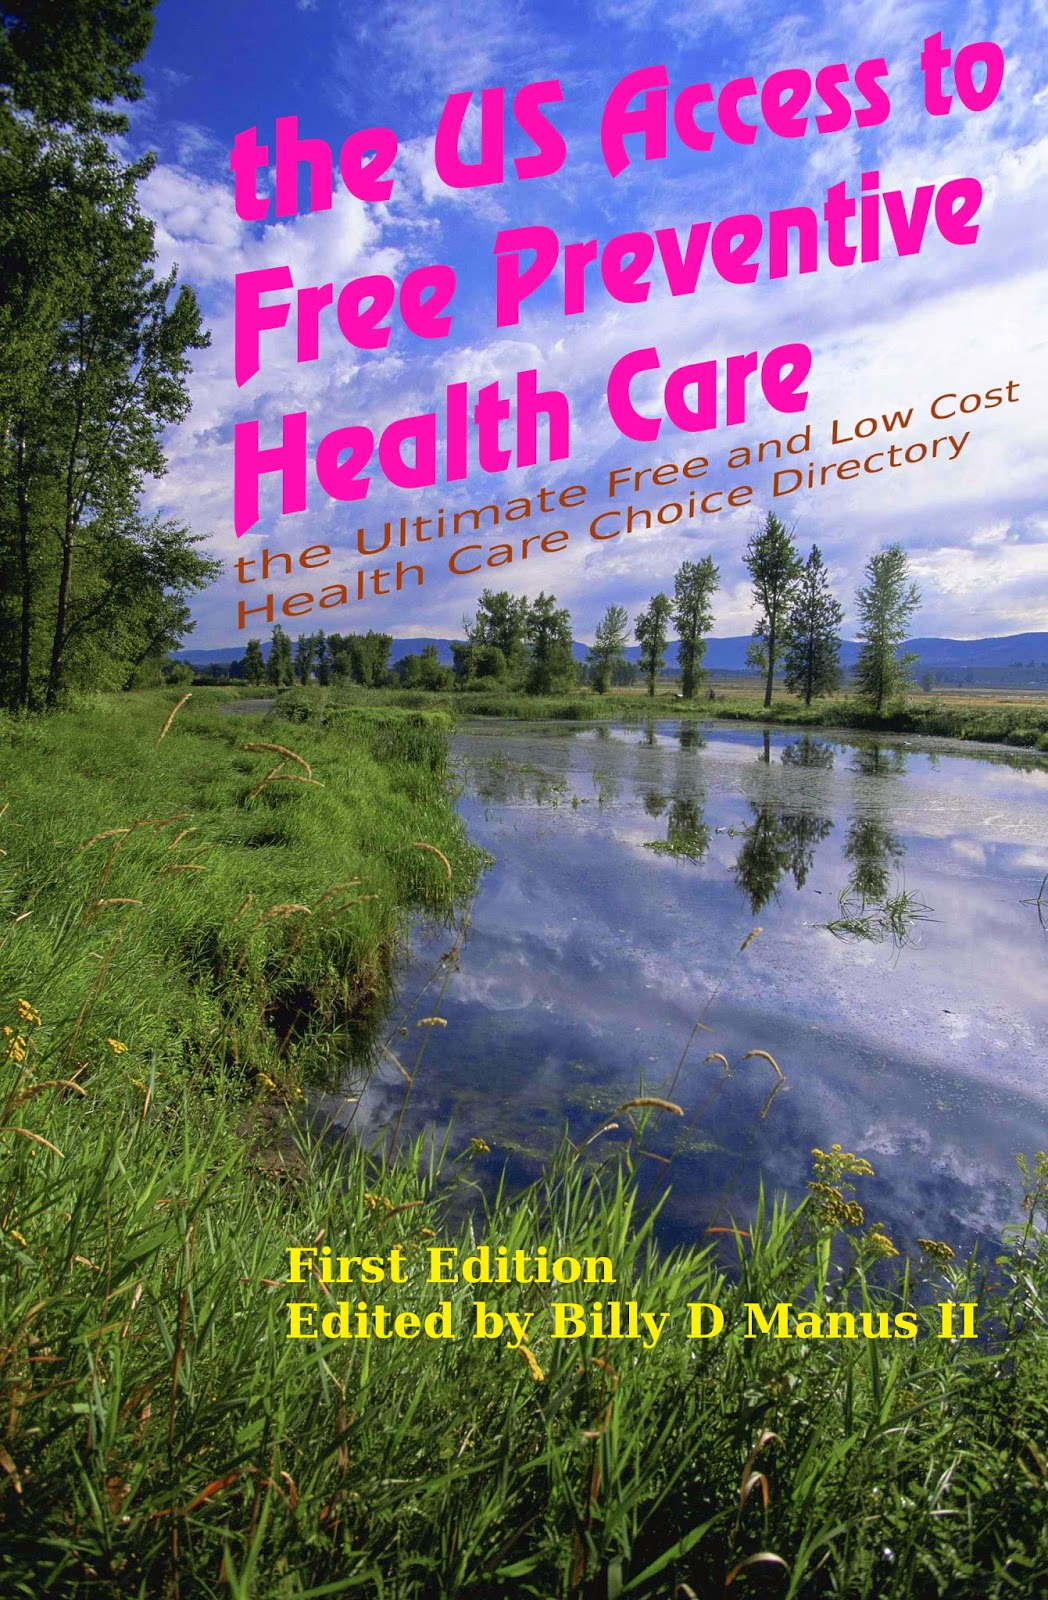 http://www.amazon.com/Access-Free-Preventive-Health-Care-ebook/dp/B00J9NSSH4